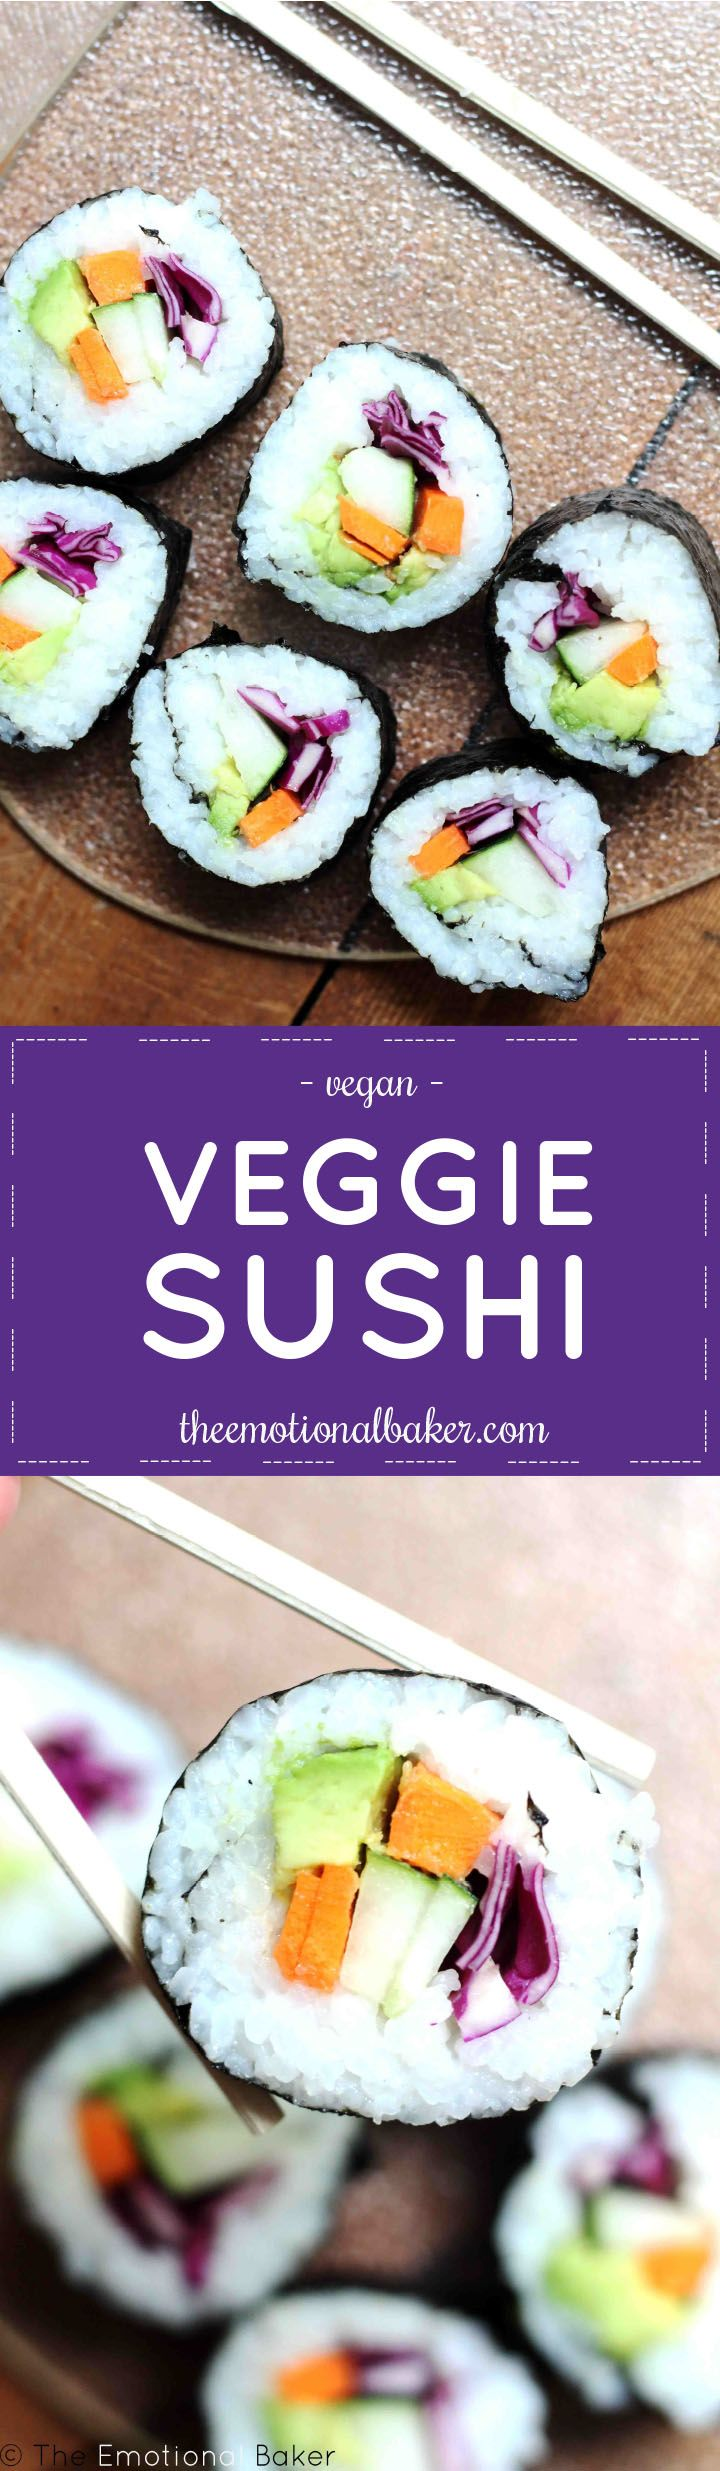 Yes! You CAN make sushi at home. This easy vegan and vegetarian friendly recipe features avocado, carrot, cucumber and red cabbage. Expert produce selector. Any of those around?? Well, it's not me. Remember how I waste time trying to make … Continuereading→